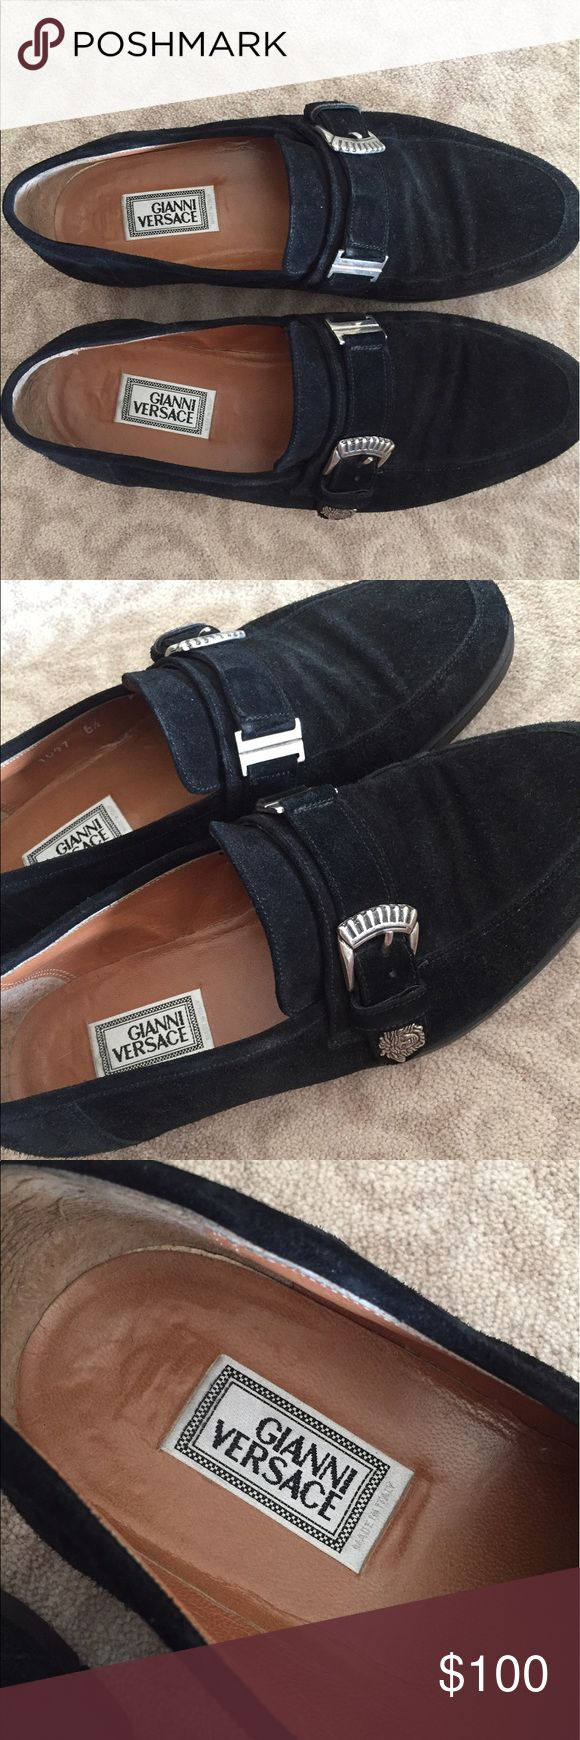 """Gianni Versace men's suede loafers Really good pre owned condition men's suede loafers. In Versace size 6.5. Good condition, gently worn. Medusa logo and buckle detailing on the front of the show. """"Made in Italy"""" hot stamp on the inside. Black suede material. Versace Shoes Loafers & Slip-Ons"""